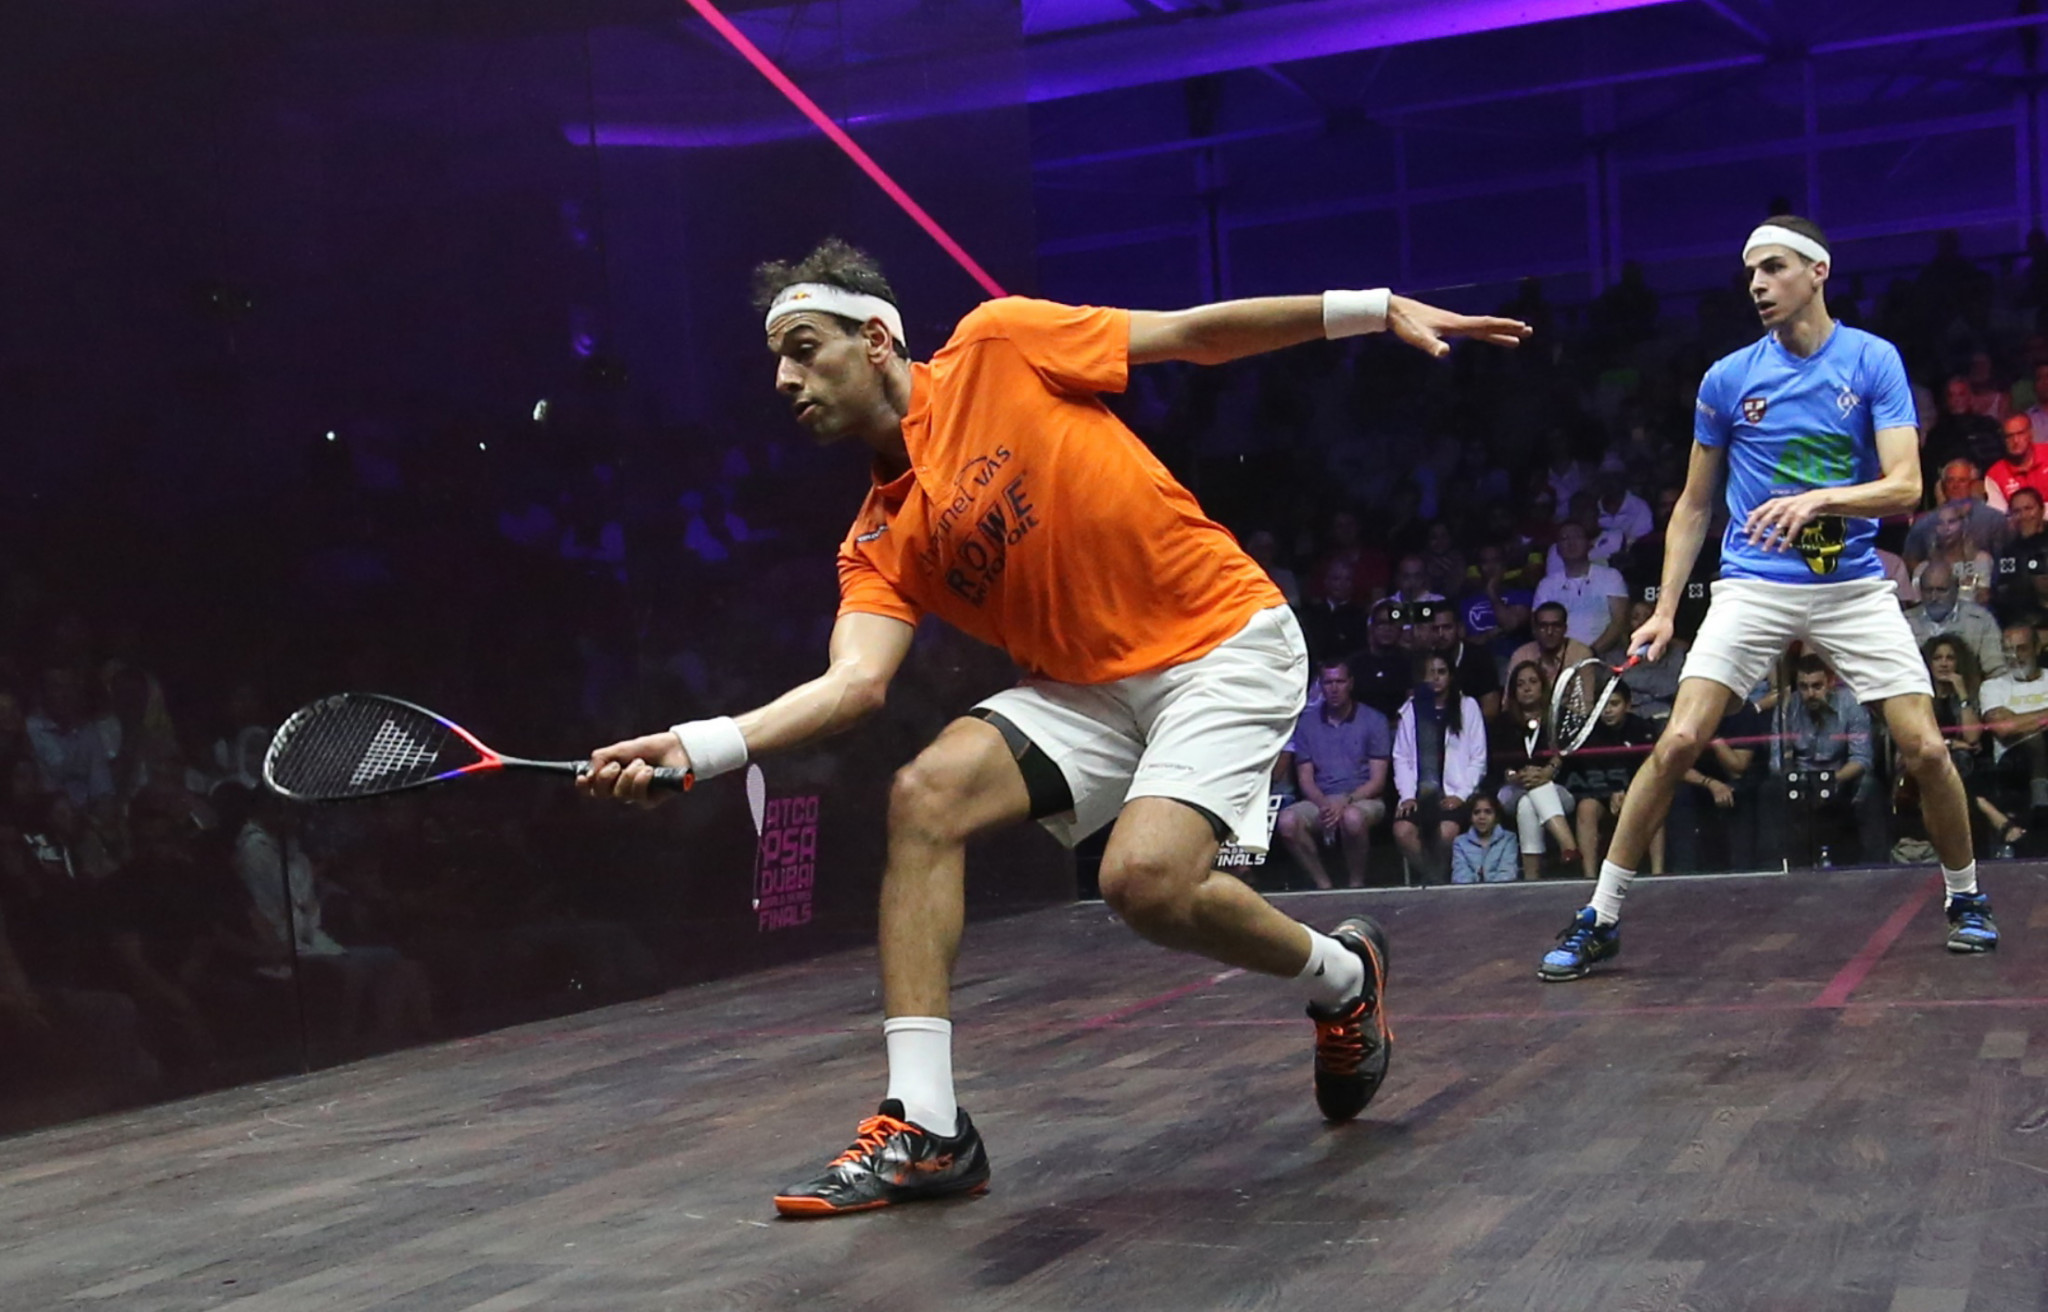 Black Ball Squash Open top seed looking forward to playing in front of home crowd in Cairo